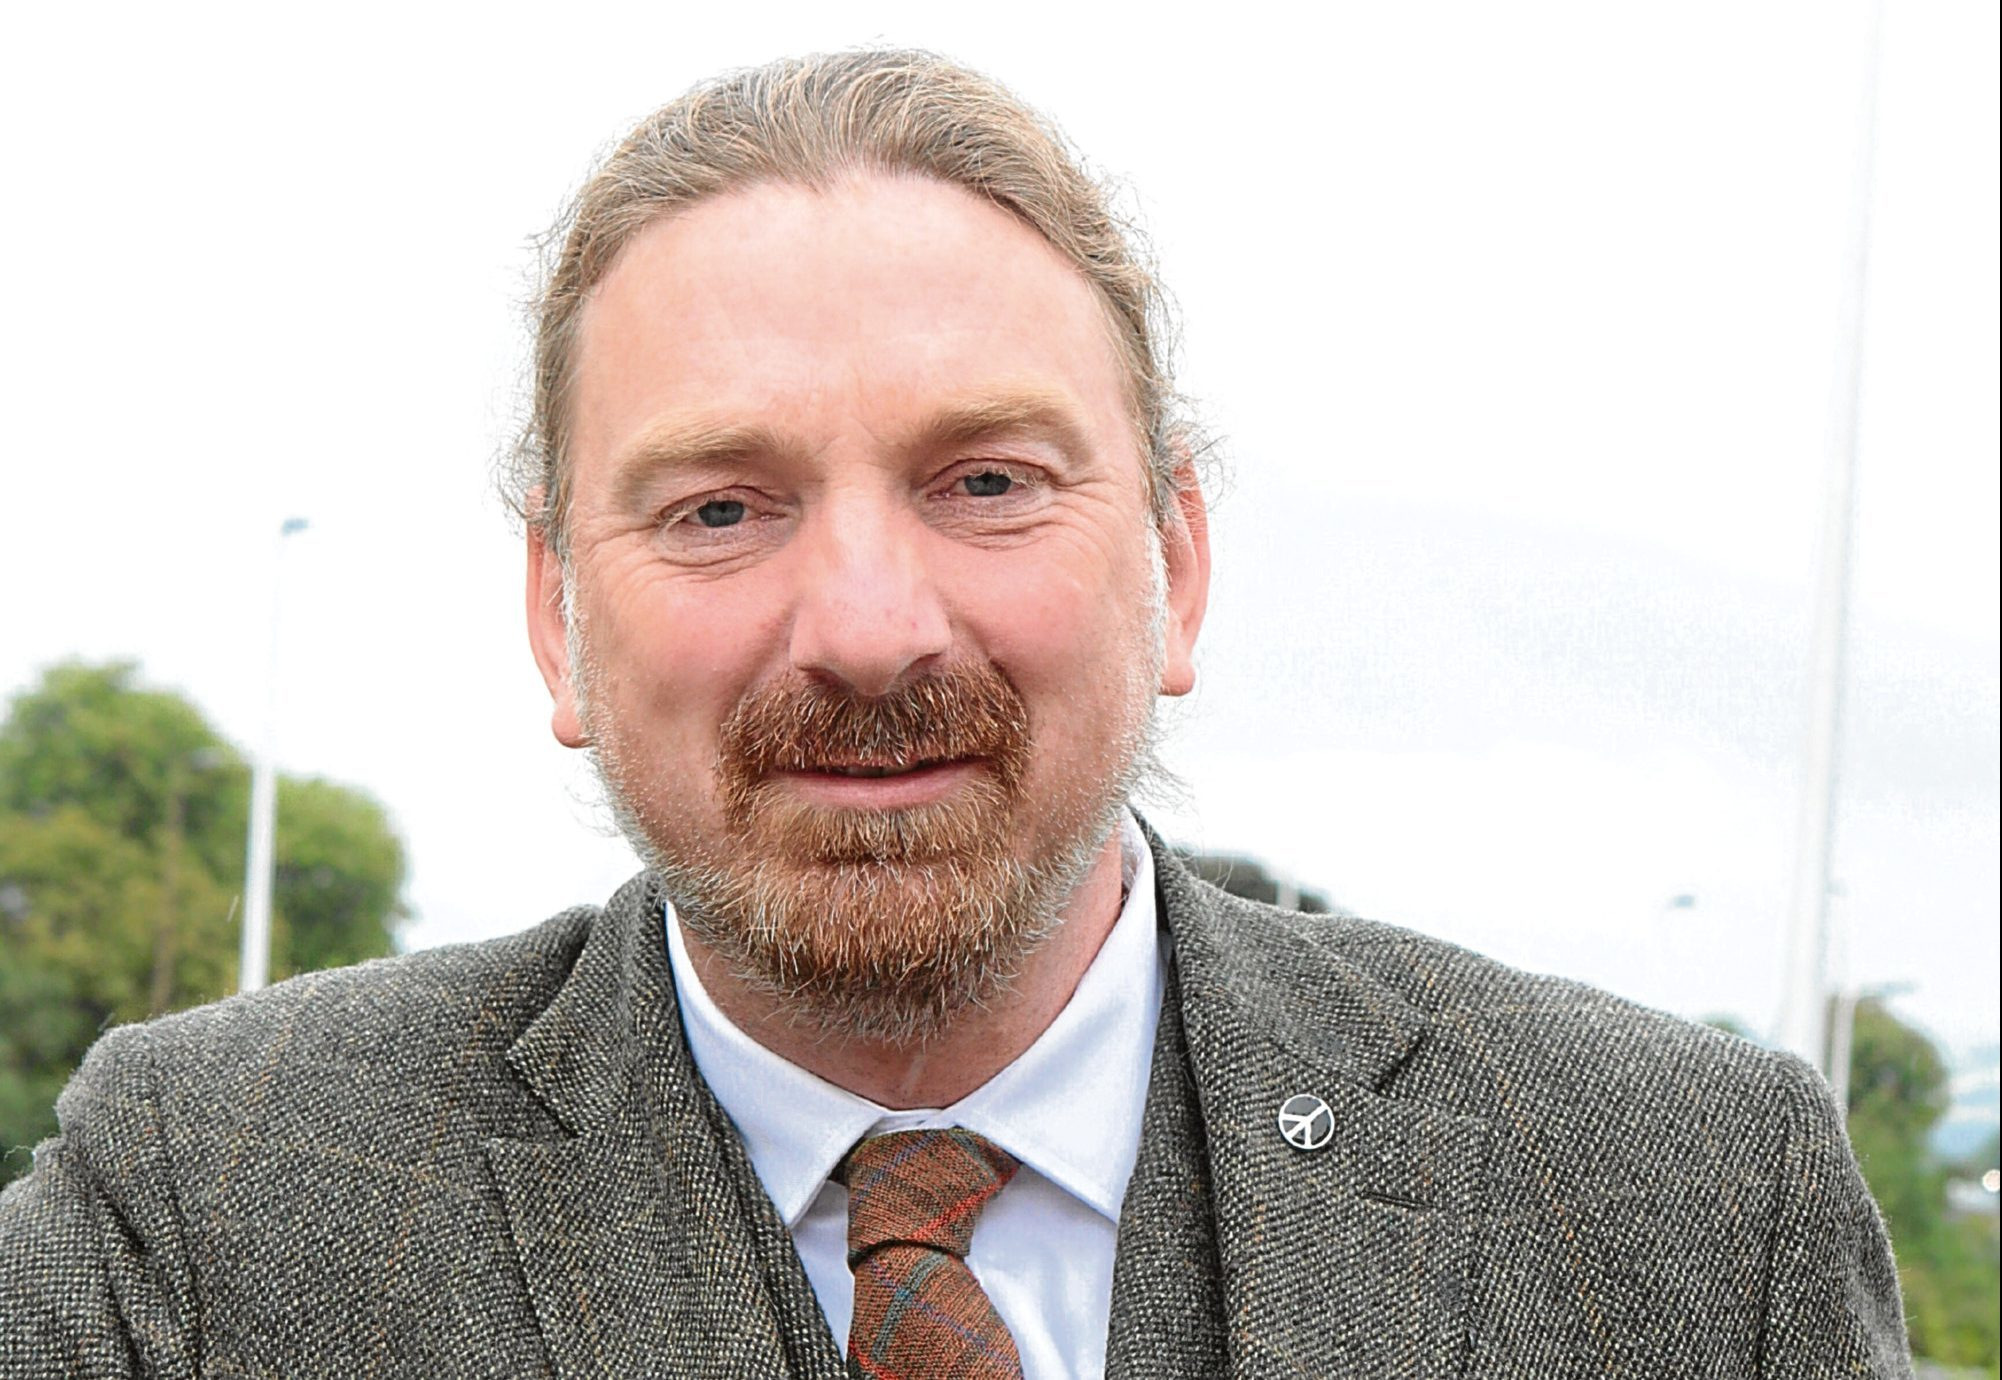 Dundee West MP Chris Law.